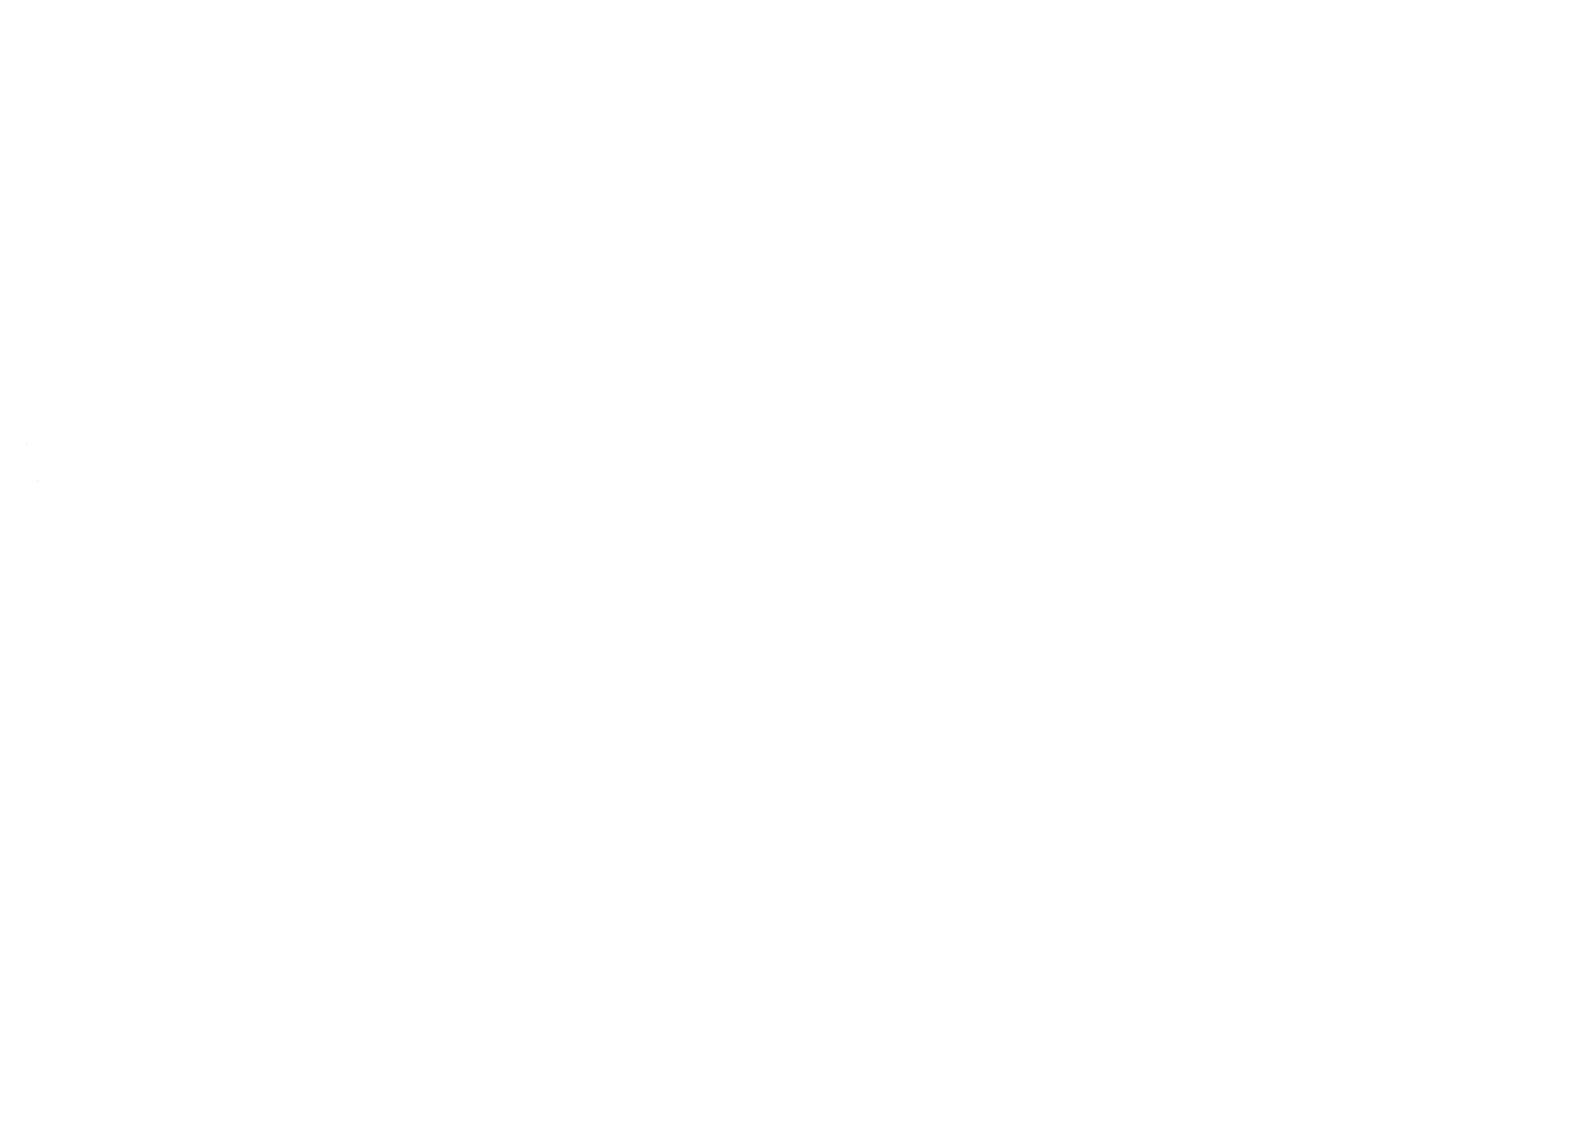 Dylan Miles Experience